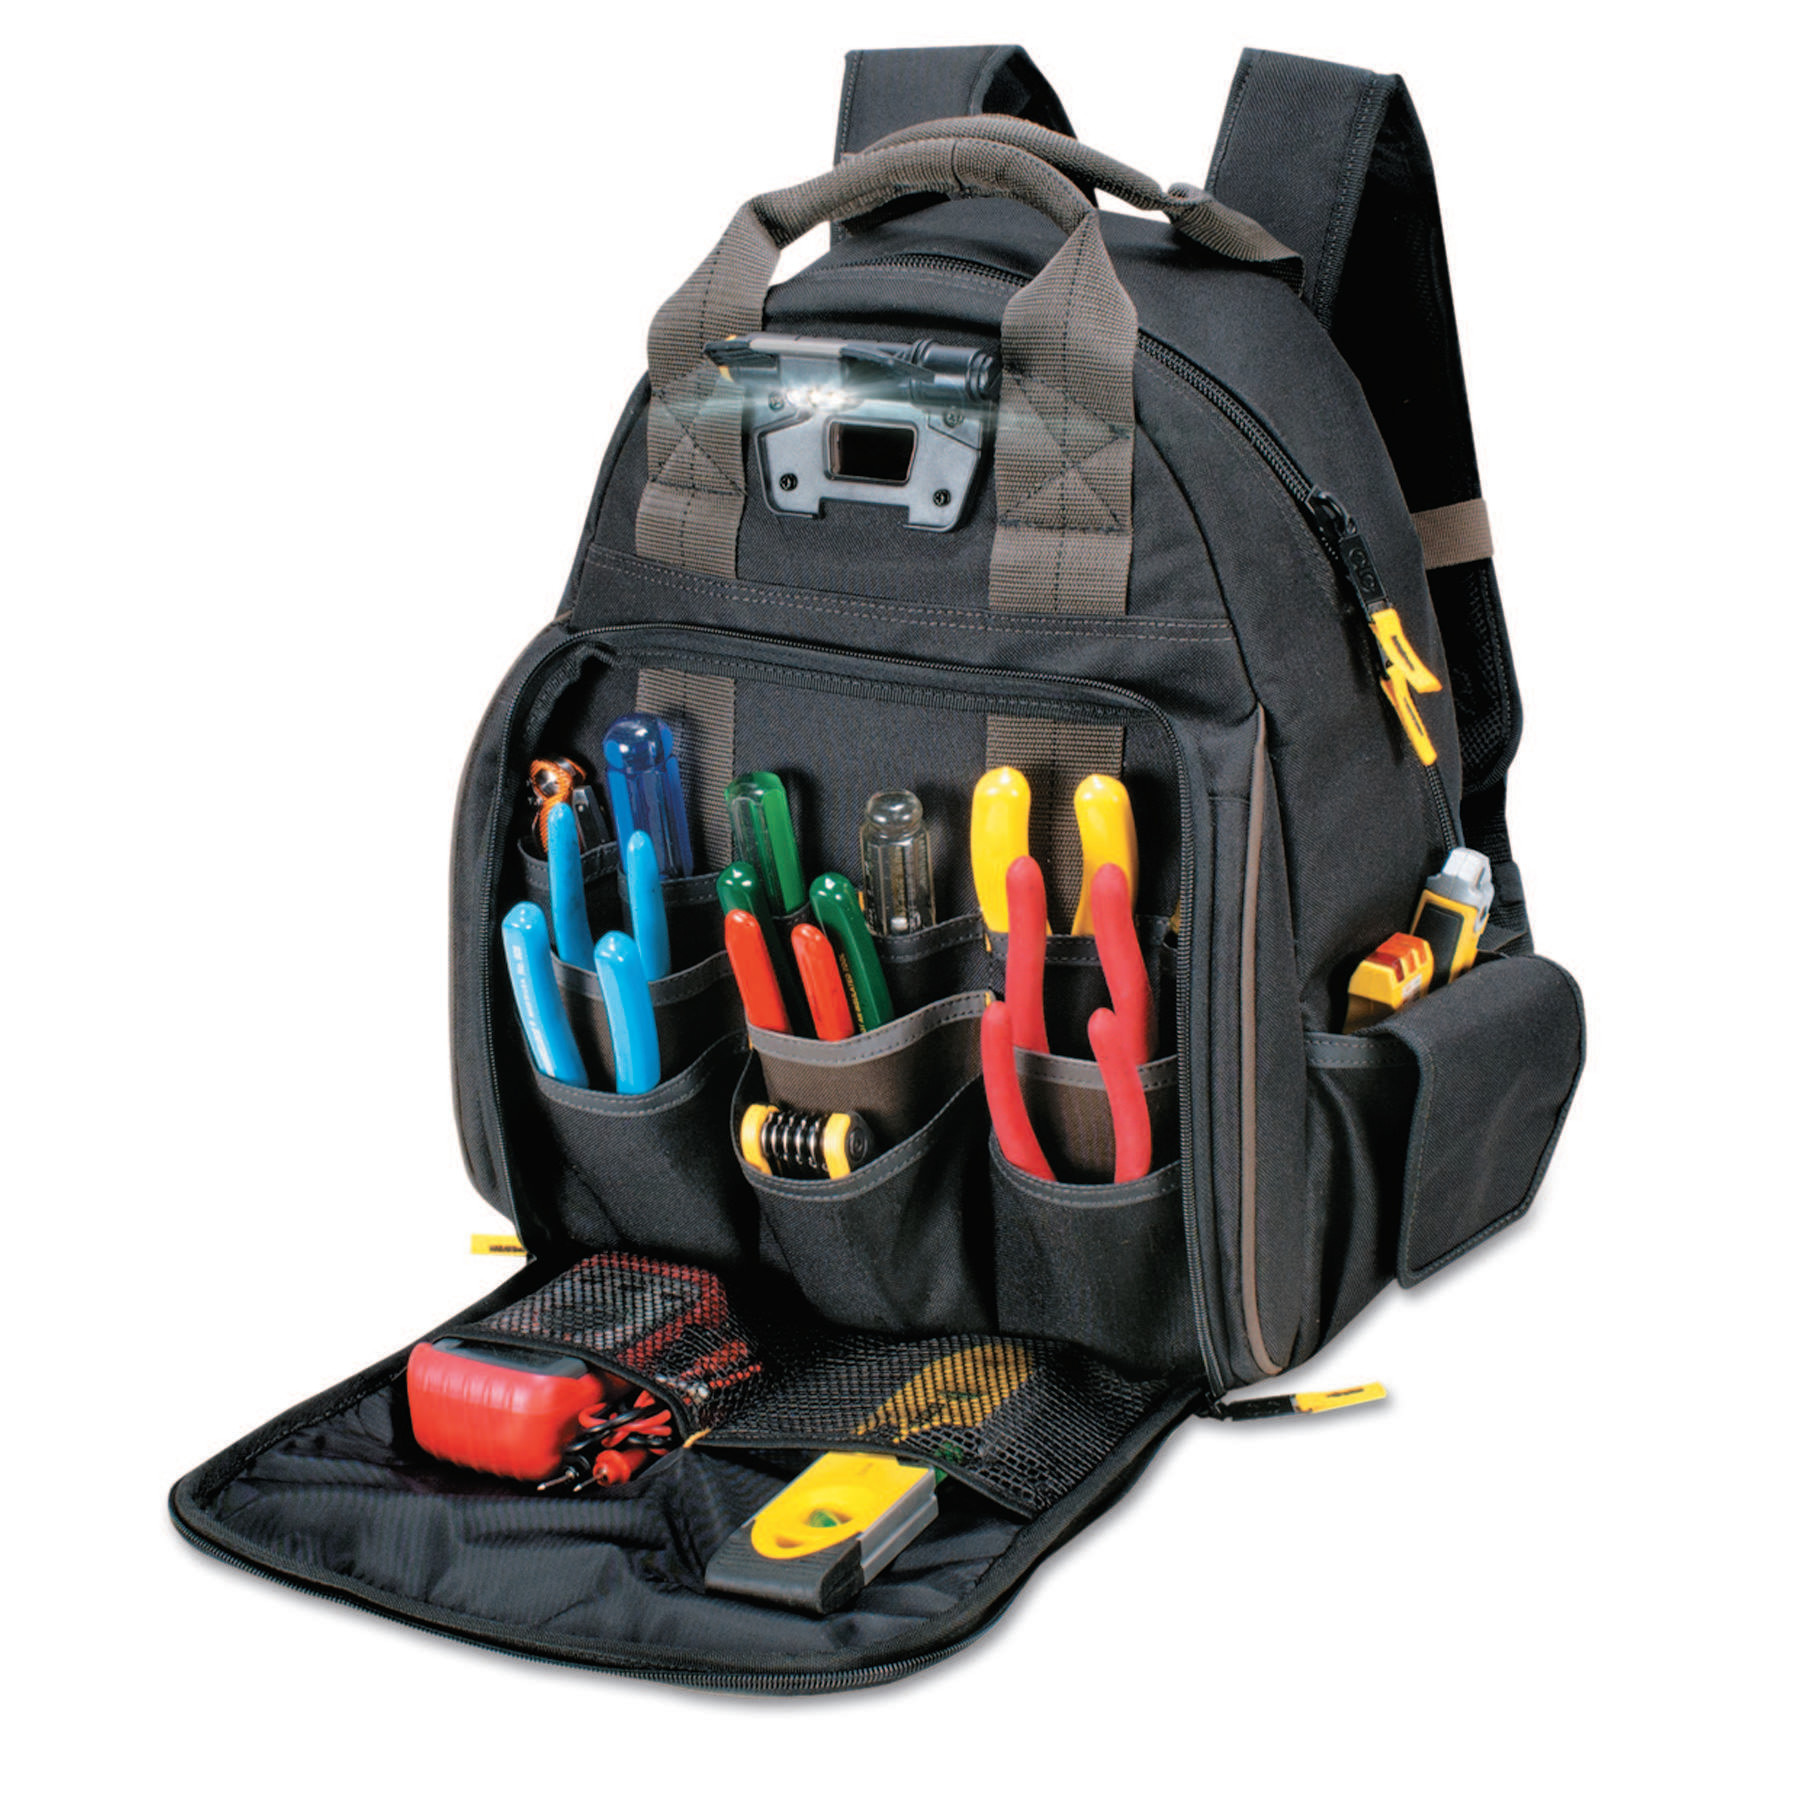 CLC Custom Leather Craft Tech Gear Lighted Backpack, 53 Compartments, 16 in X 13 in